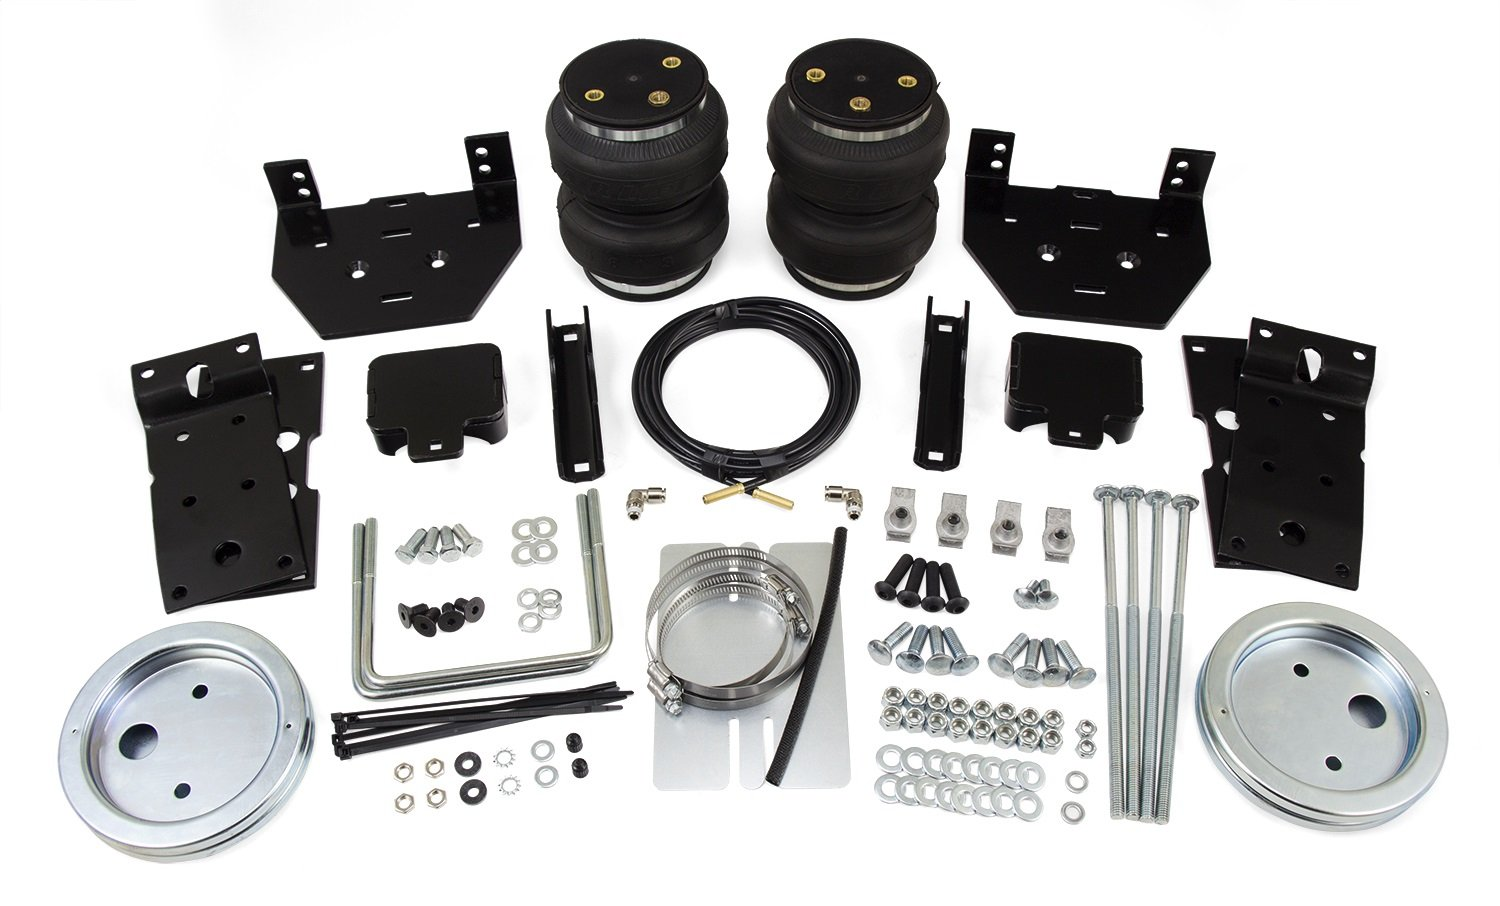 F350 4WD Air Lift 88399 LoadLifter 5000 Ultimate Air Springs for 2017-2019 Ford F250